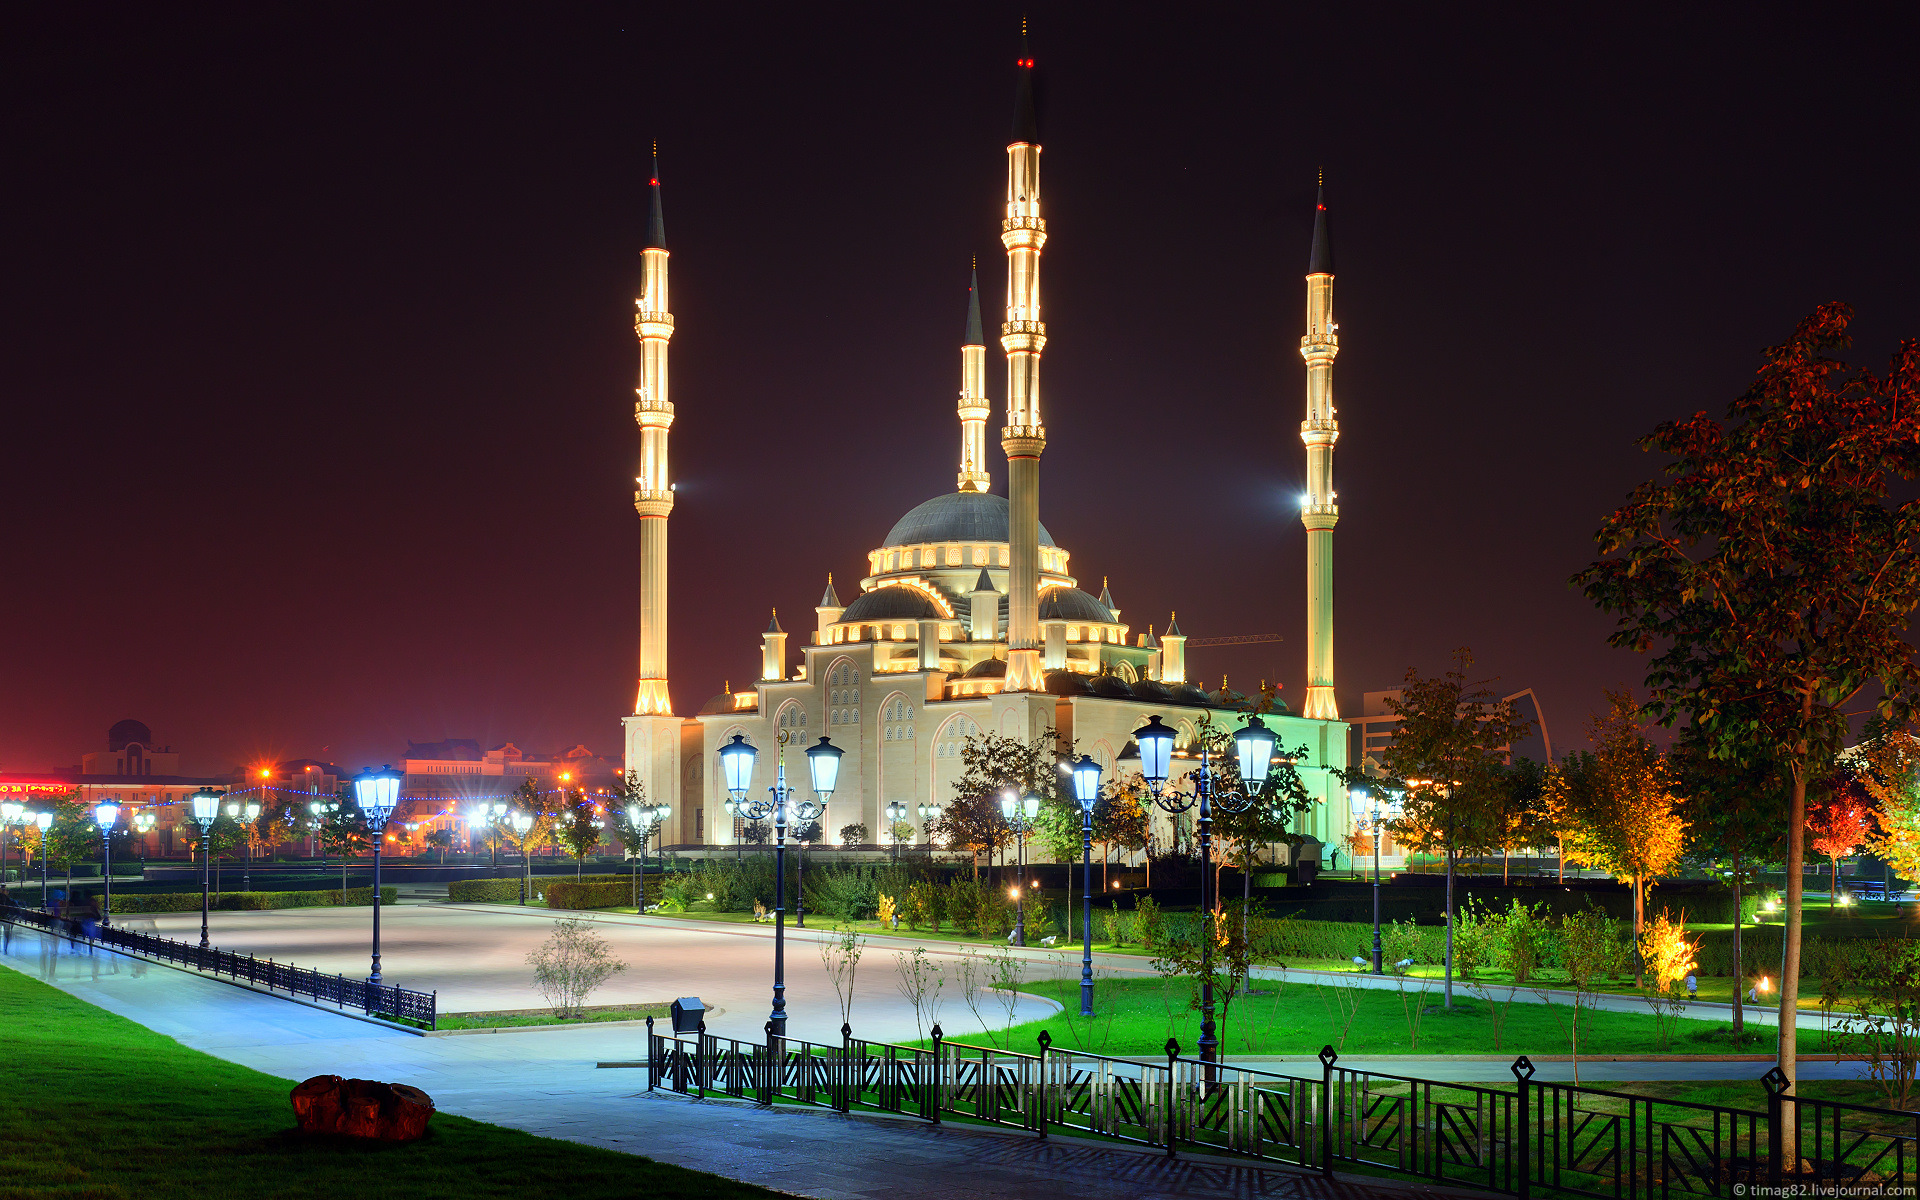 https://i1.wp.com/russiatrek.org/blog/wp-content/uploads/2012/01/grozny-city-at-night-time-11.jpg